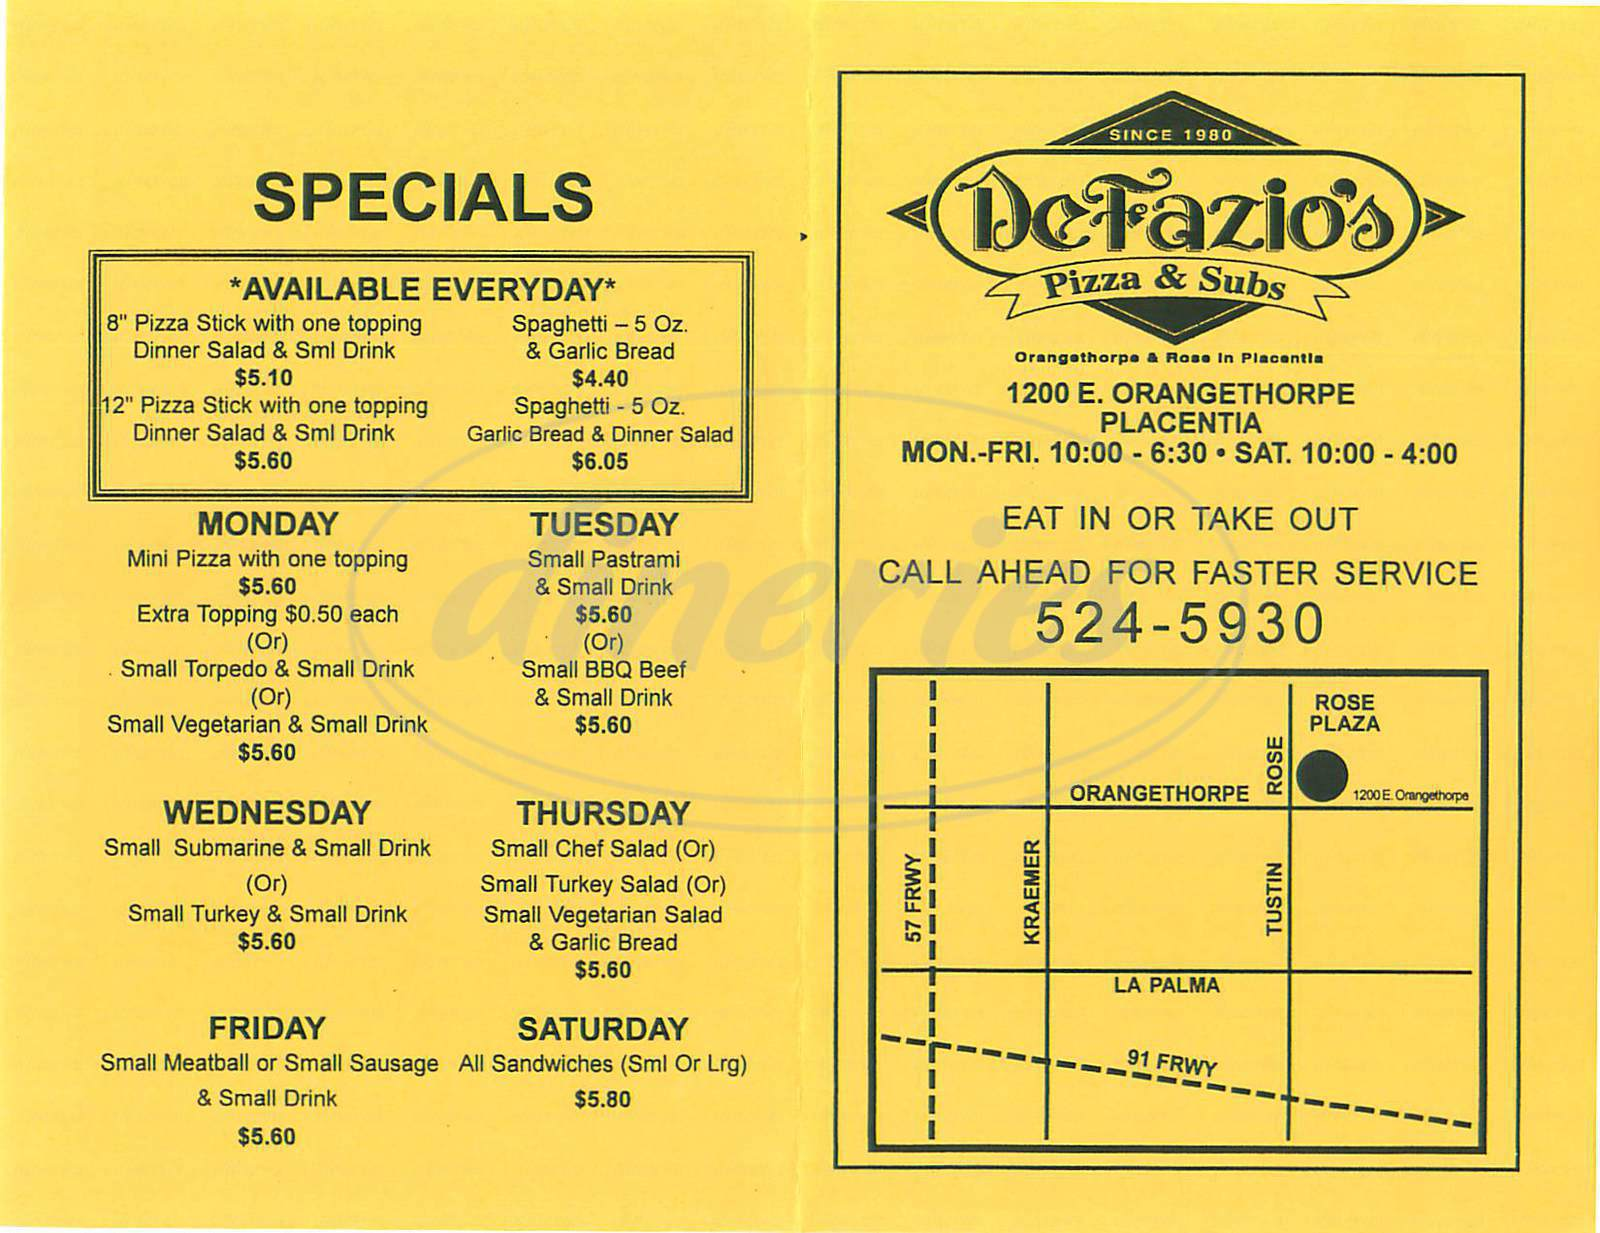 menu for De Fazio's